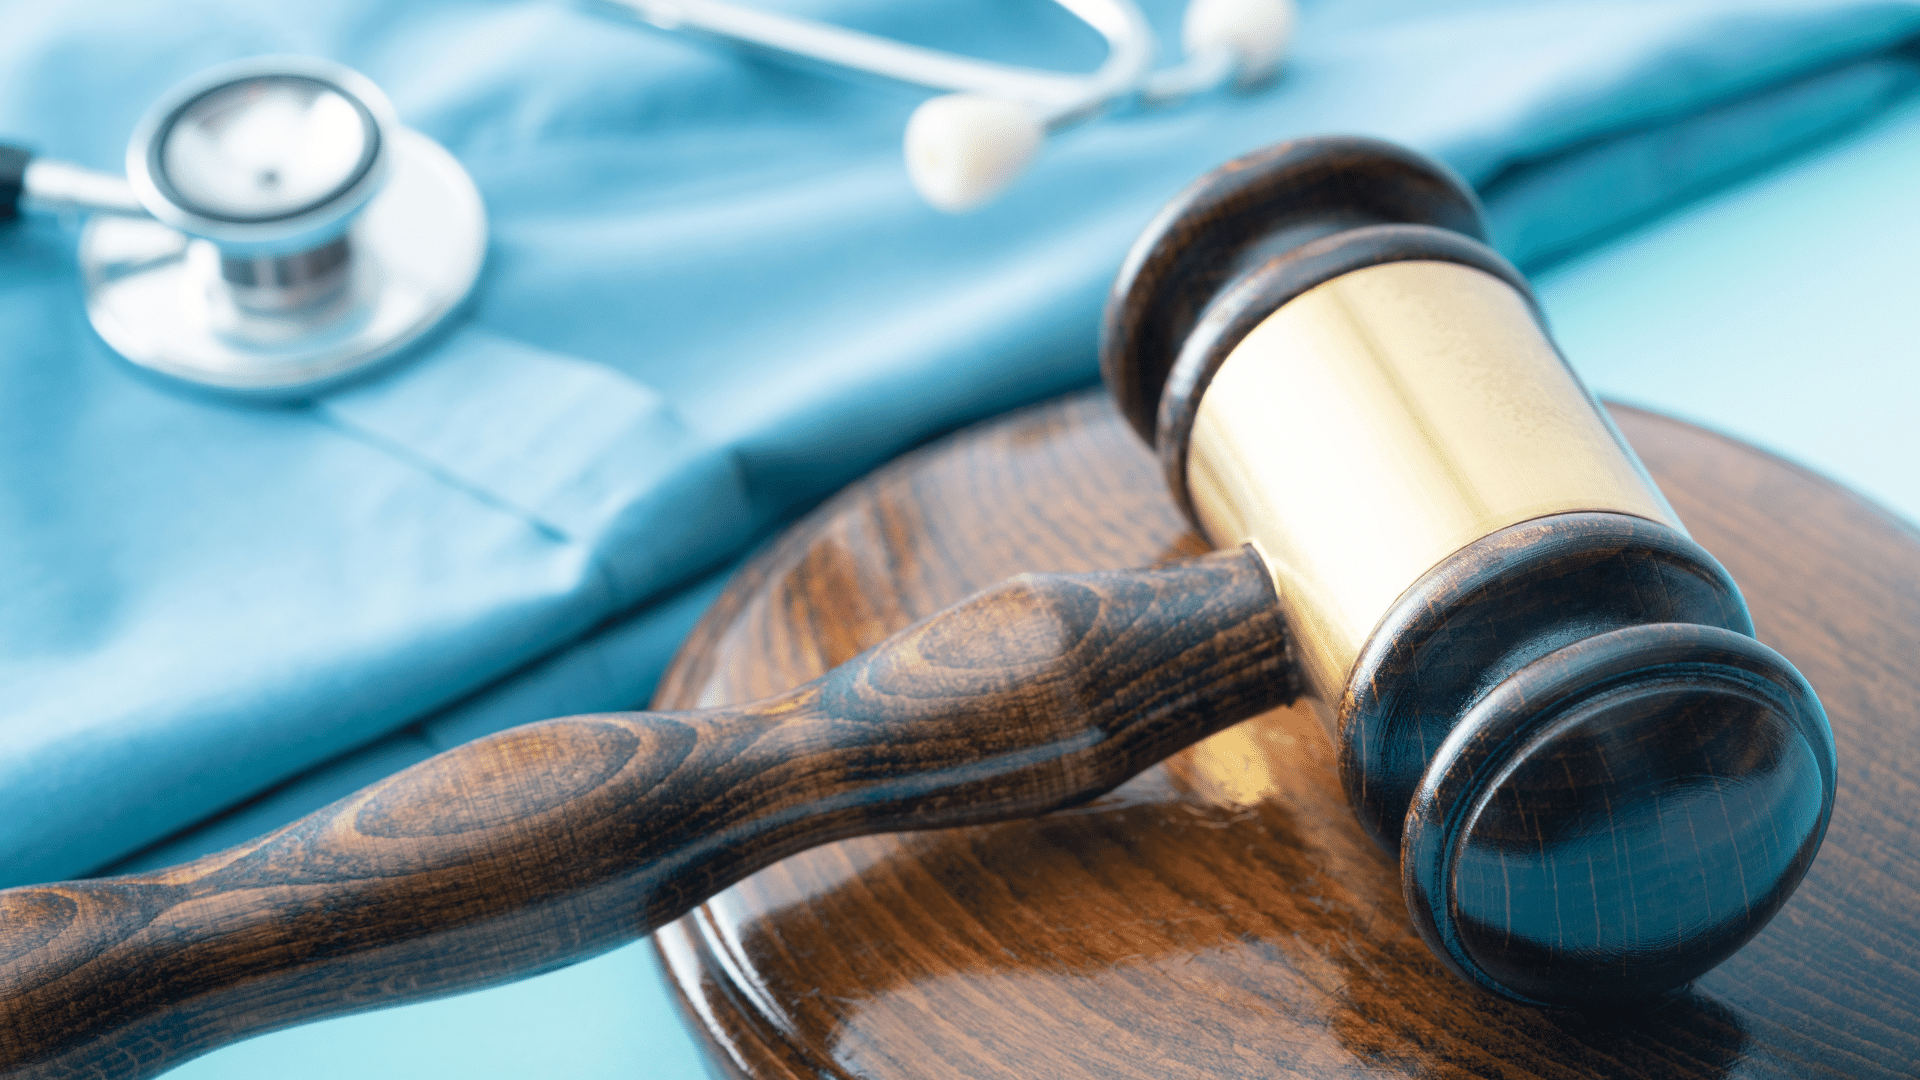 Gavel and stethoscope in background